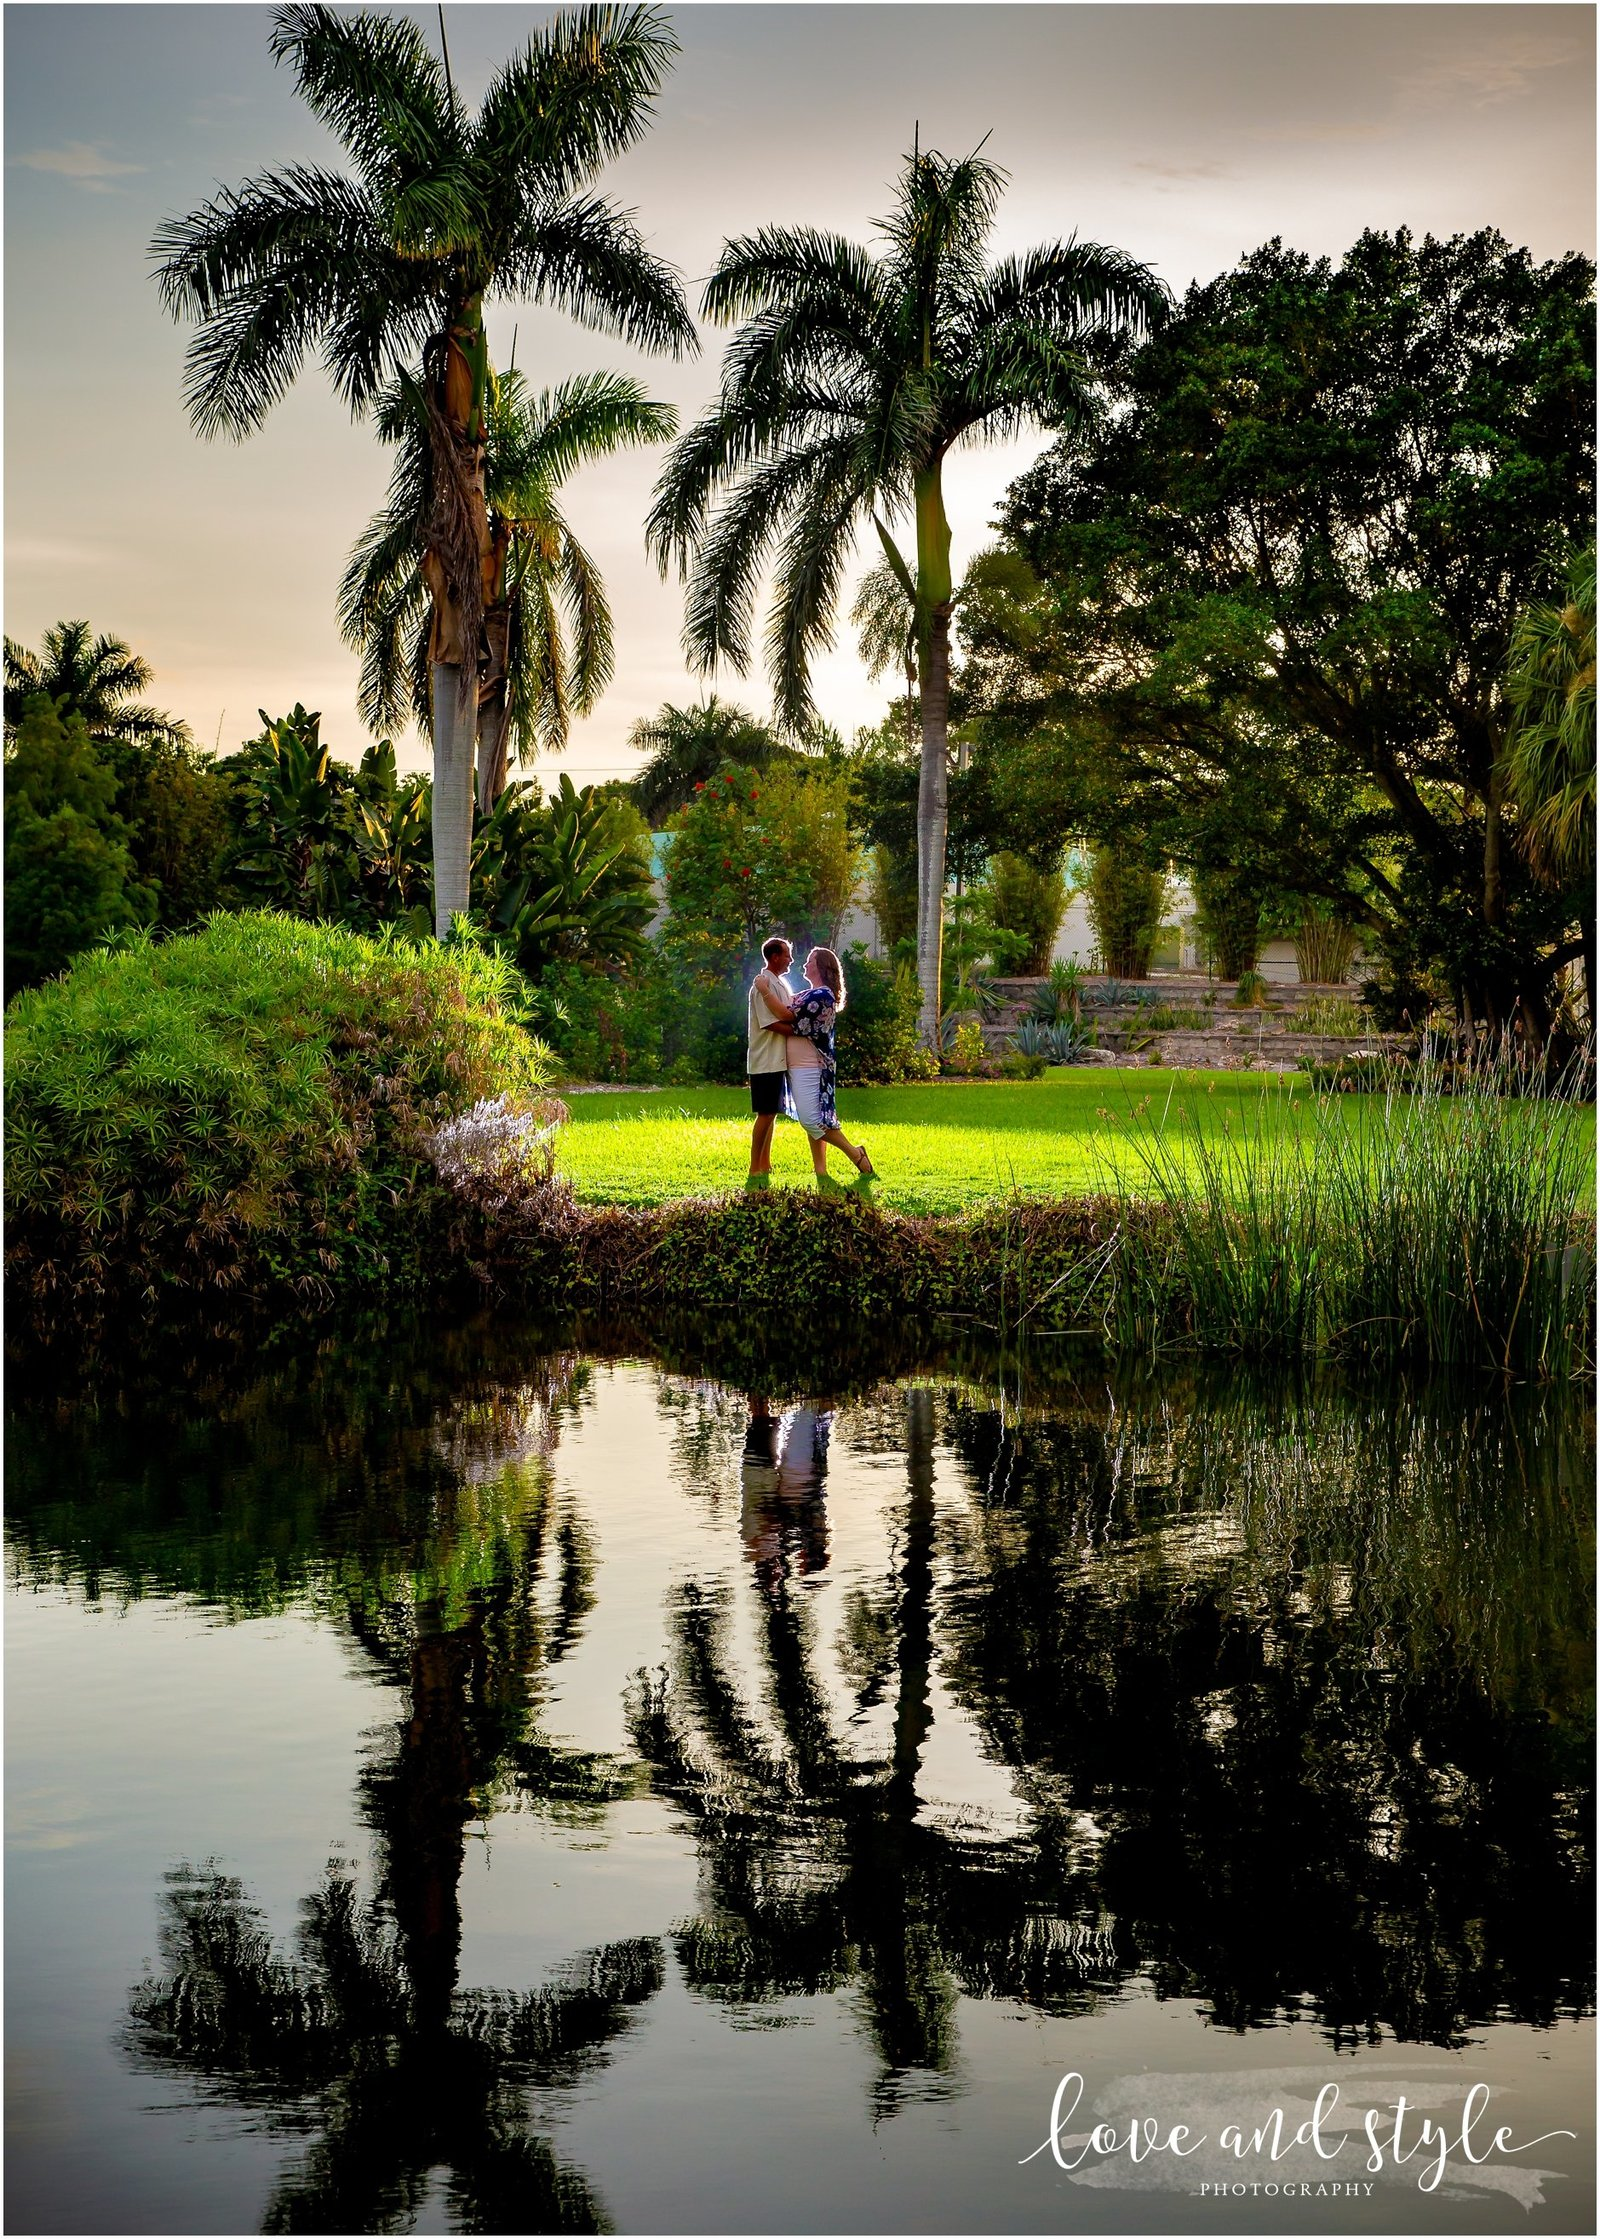 Engagement Photography at the Palma Sola Botanical Garden in Bradenton